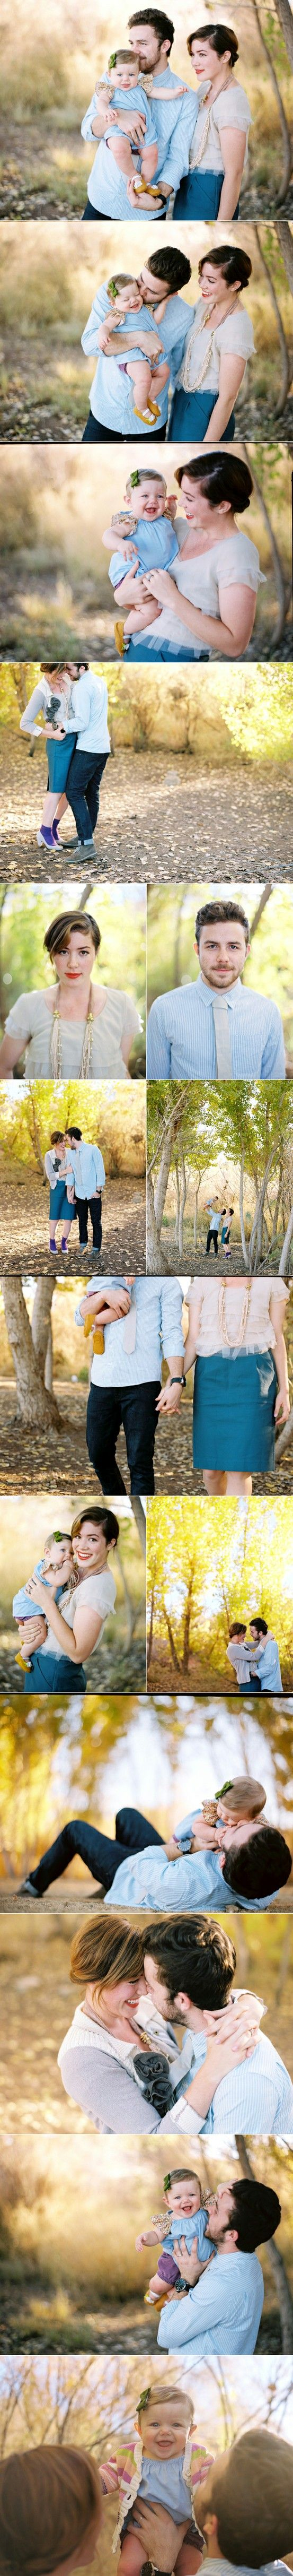 family photos - Click image to find more hot Pinterest pins